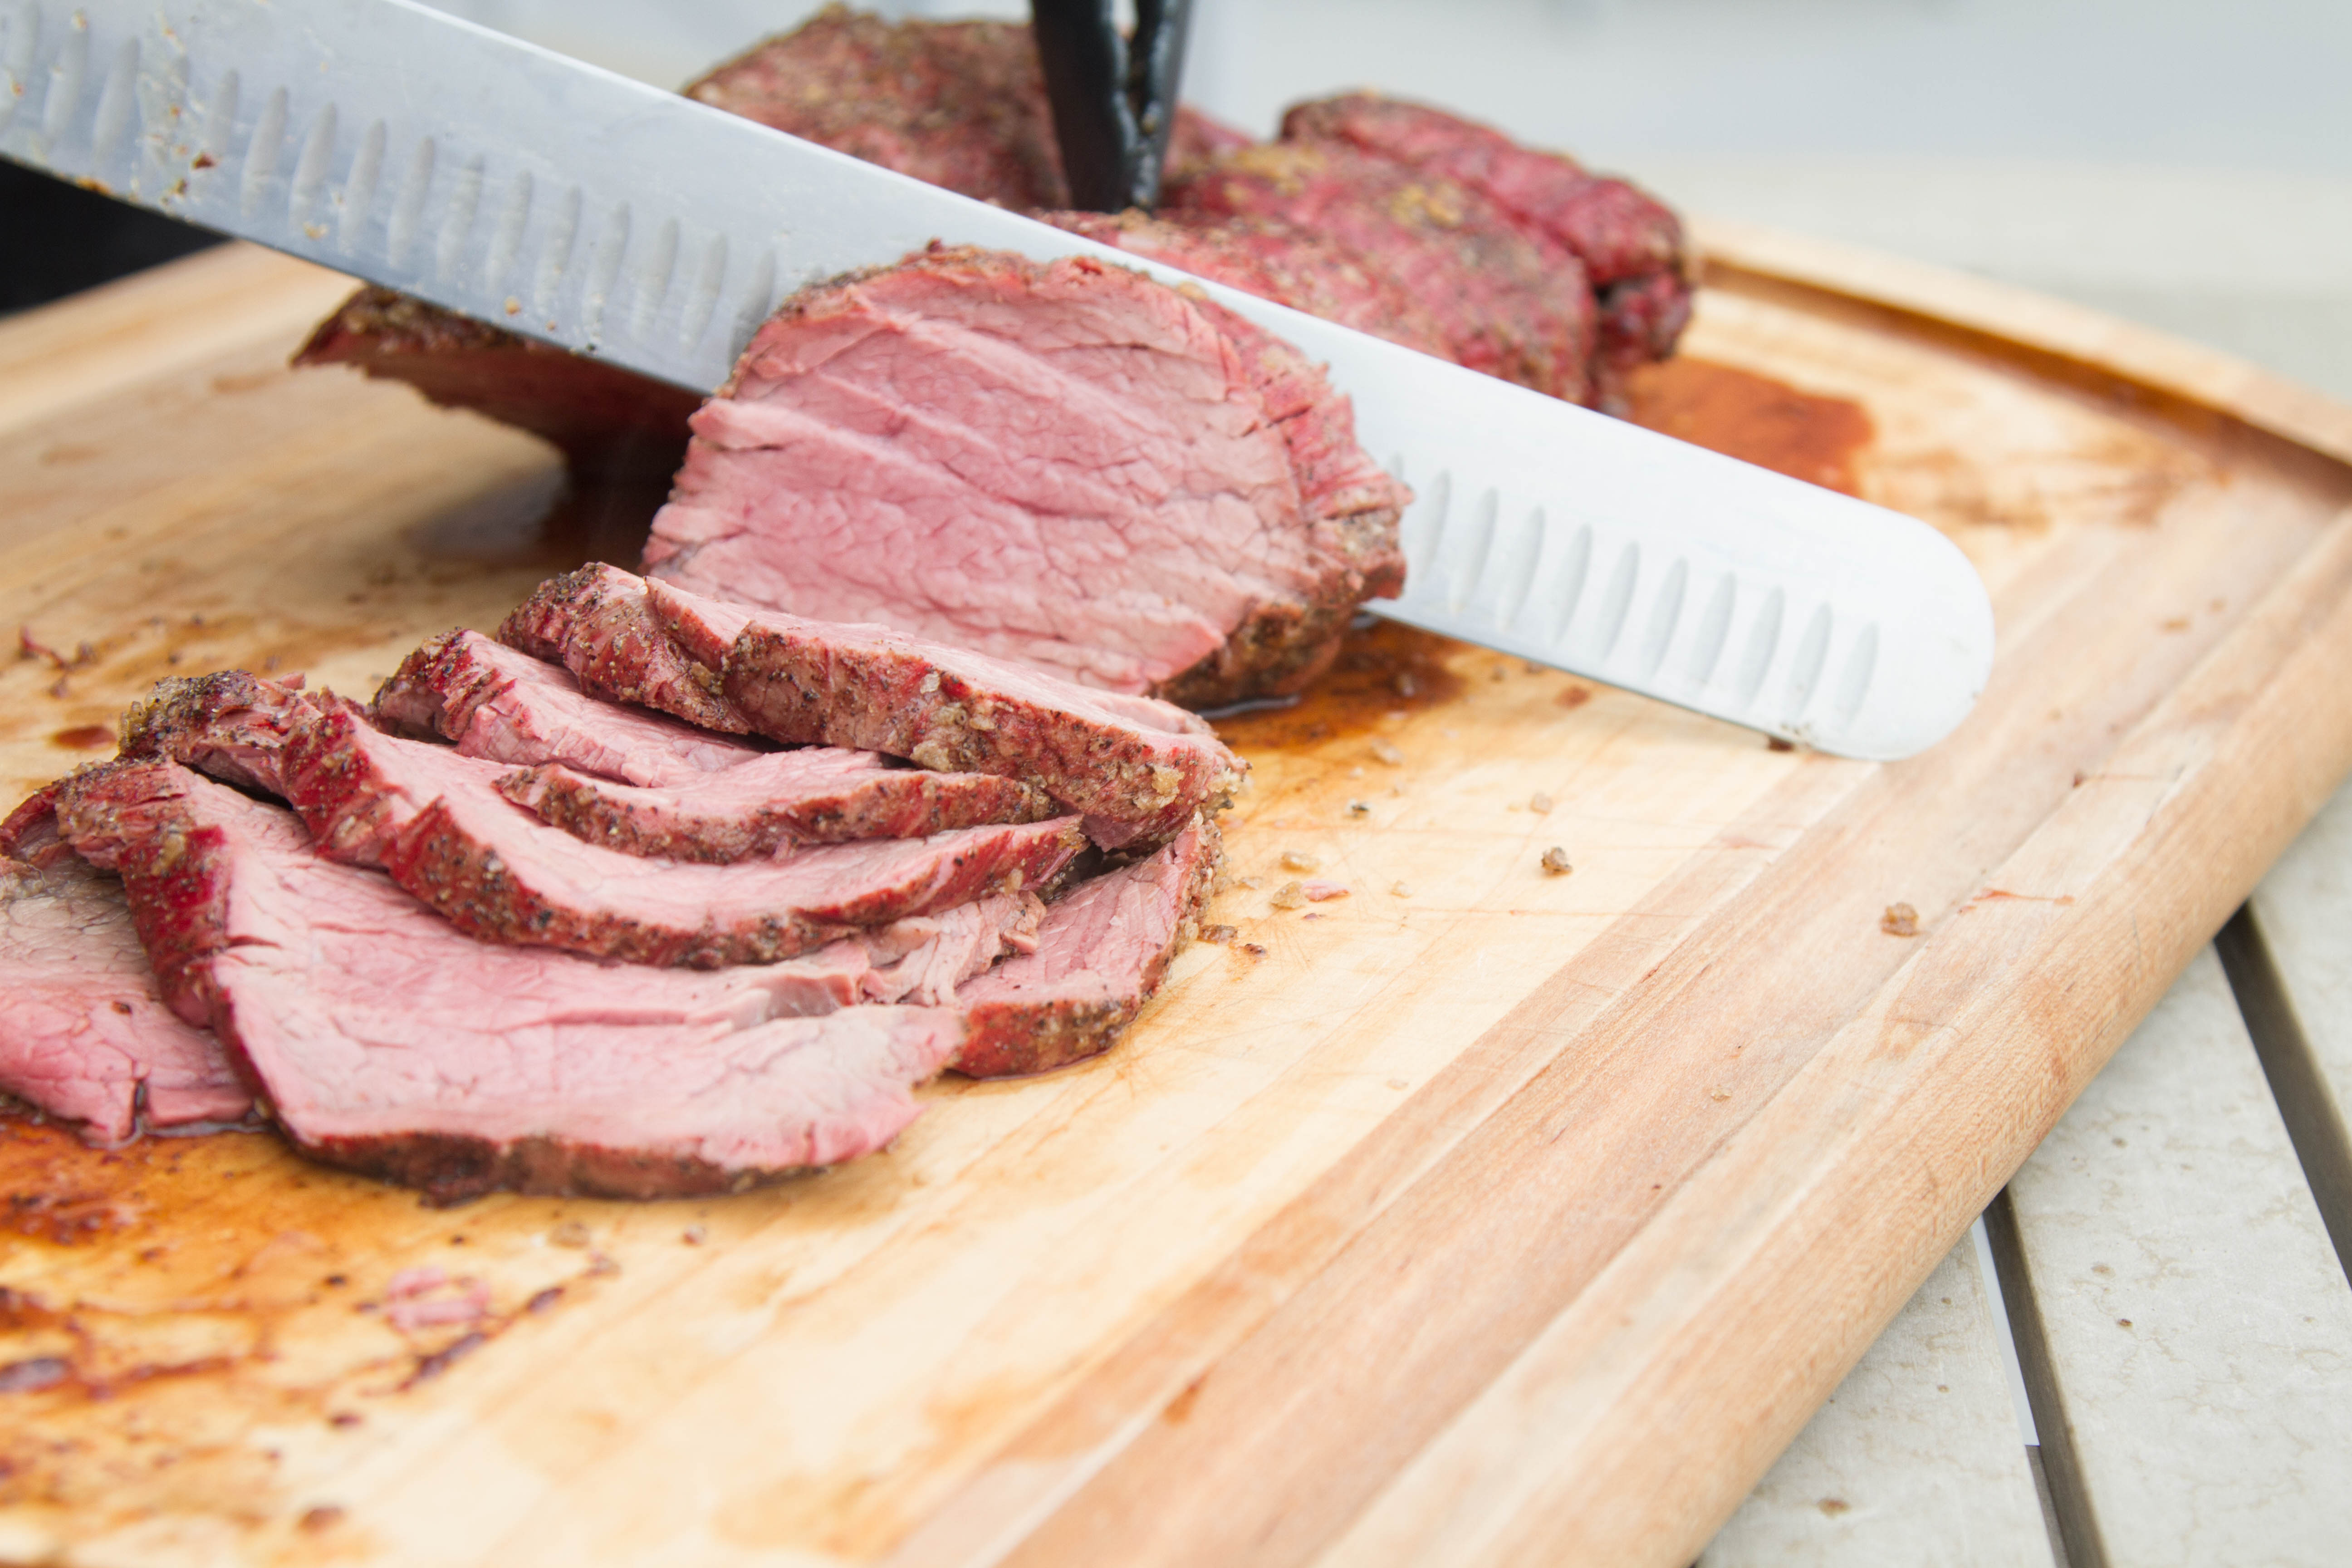 How long does it take to cook a 3 pound beef tenderloin